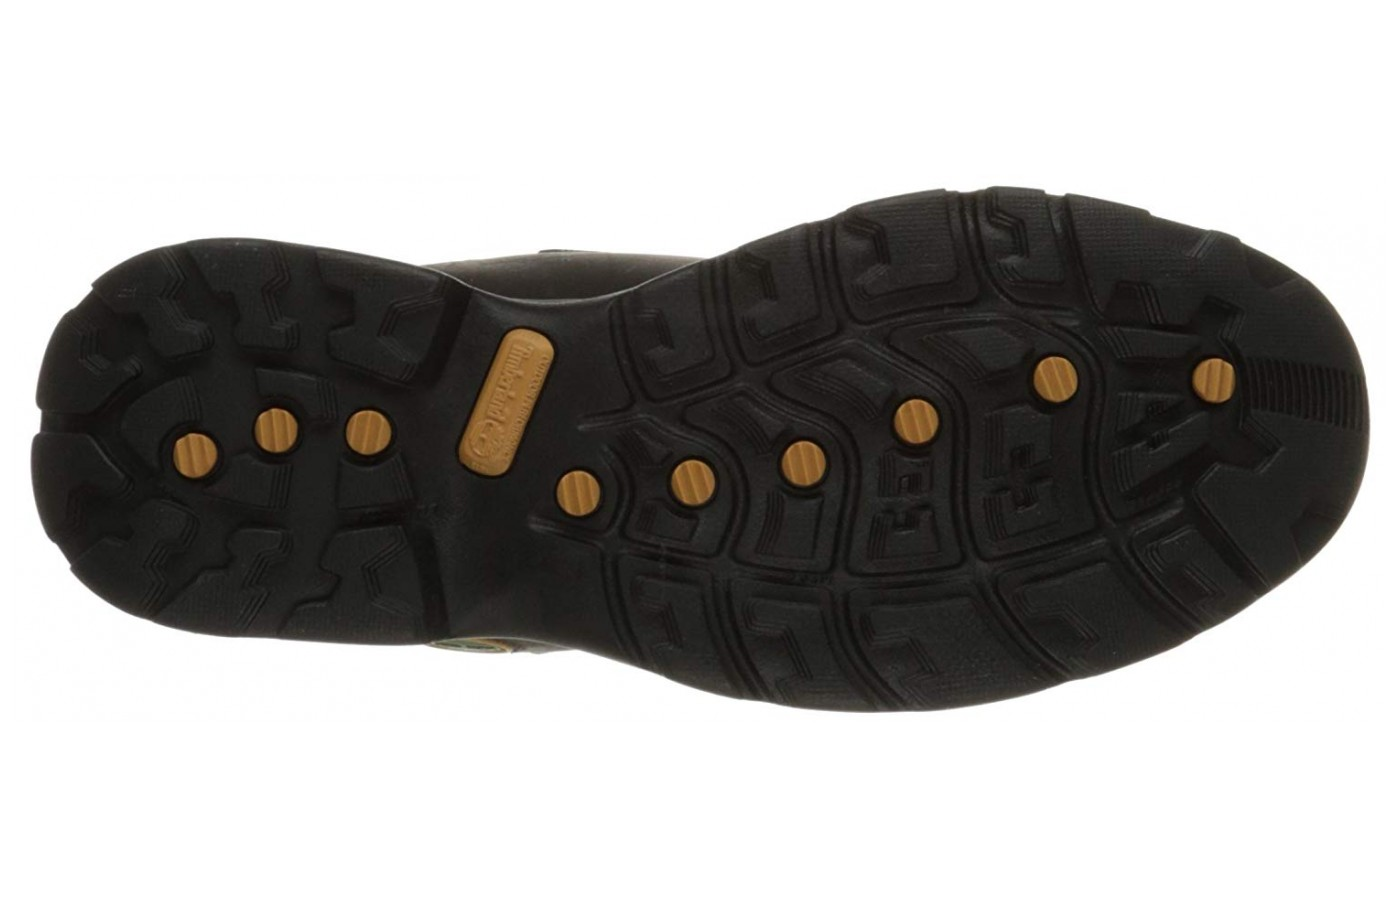 The sole has a one and a half inch heal that offers a little leverage from the ground when crossing wet areas.